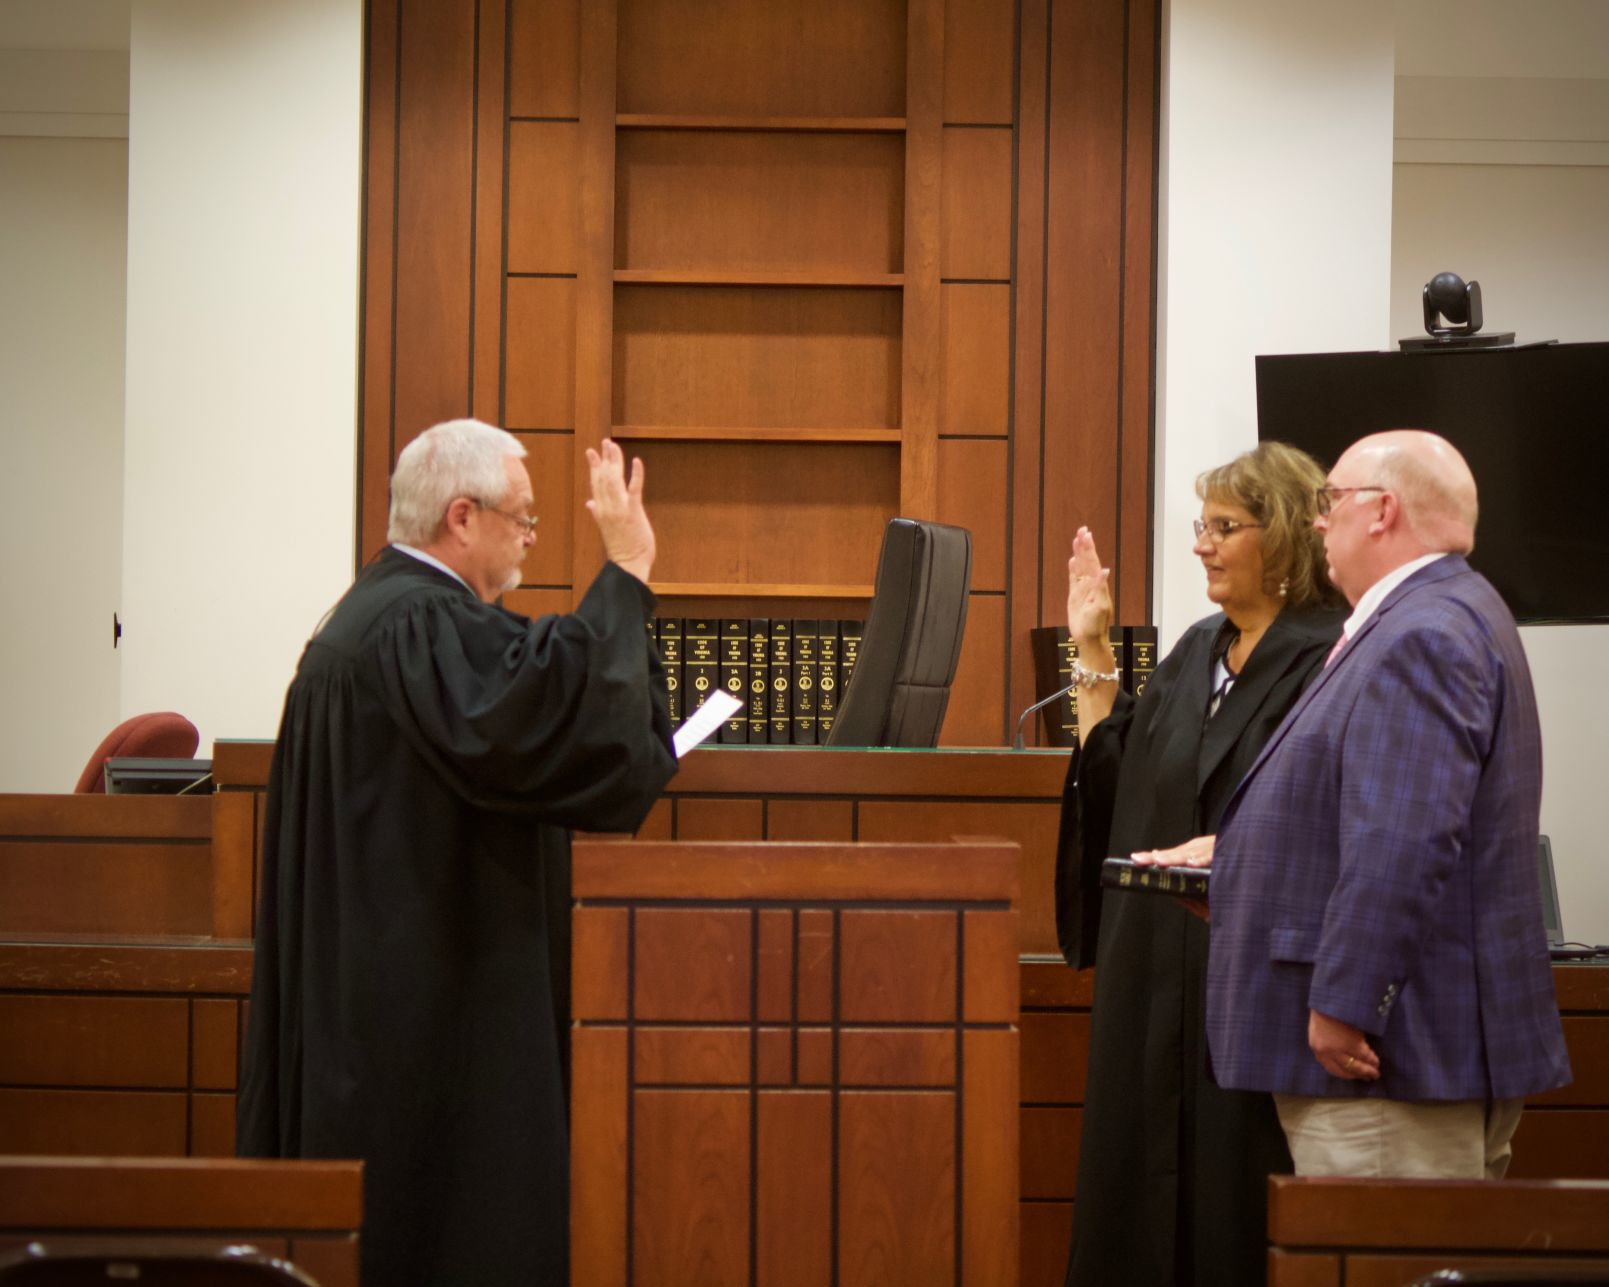 Chief Circuit Court Judge David V. Williams swears in Kimberly R. Belongia